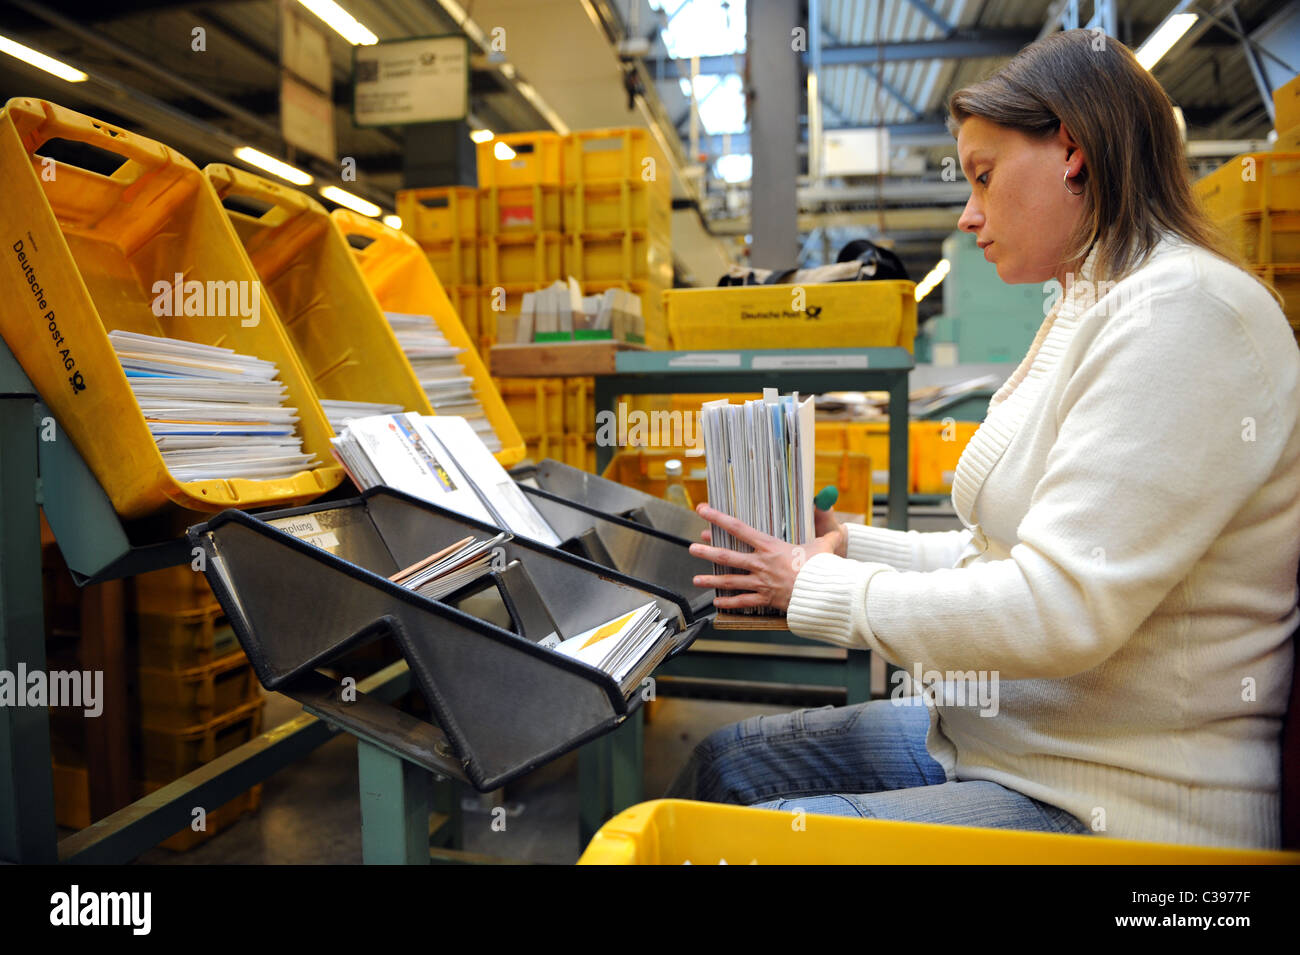 A woman sorting letters in a postal sorting centre, Berlin, Germany Stock Photo